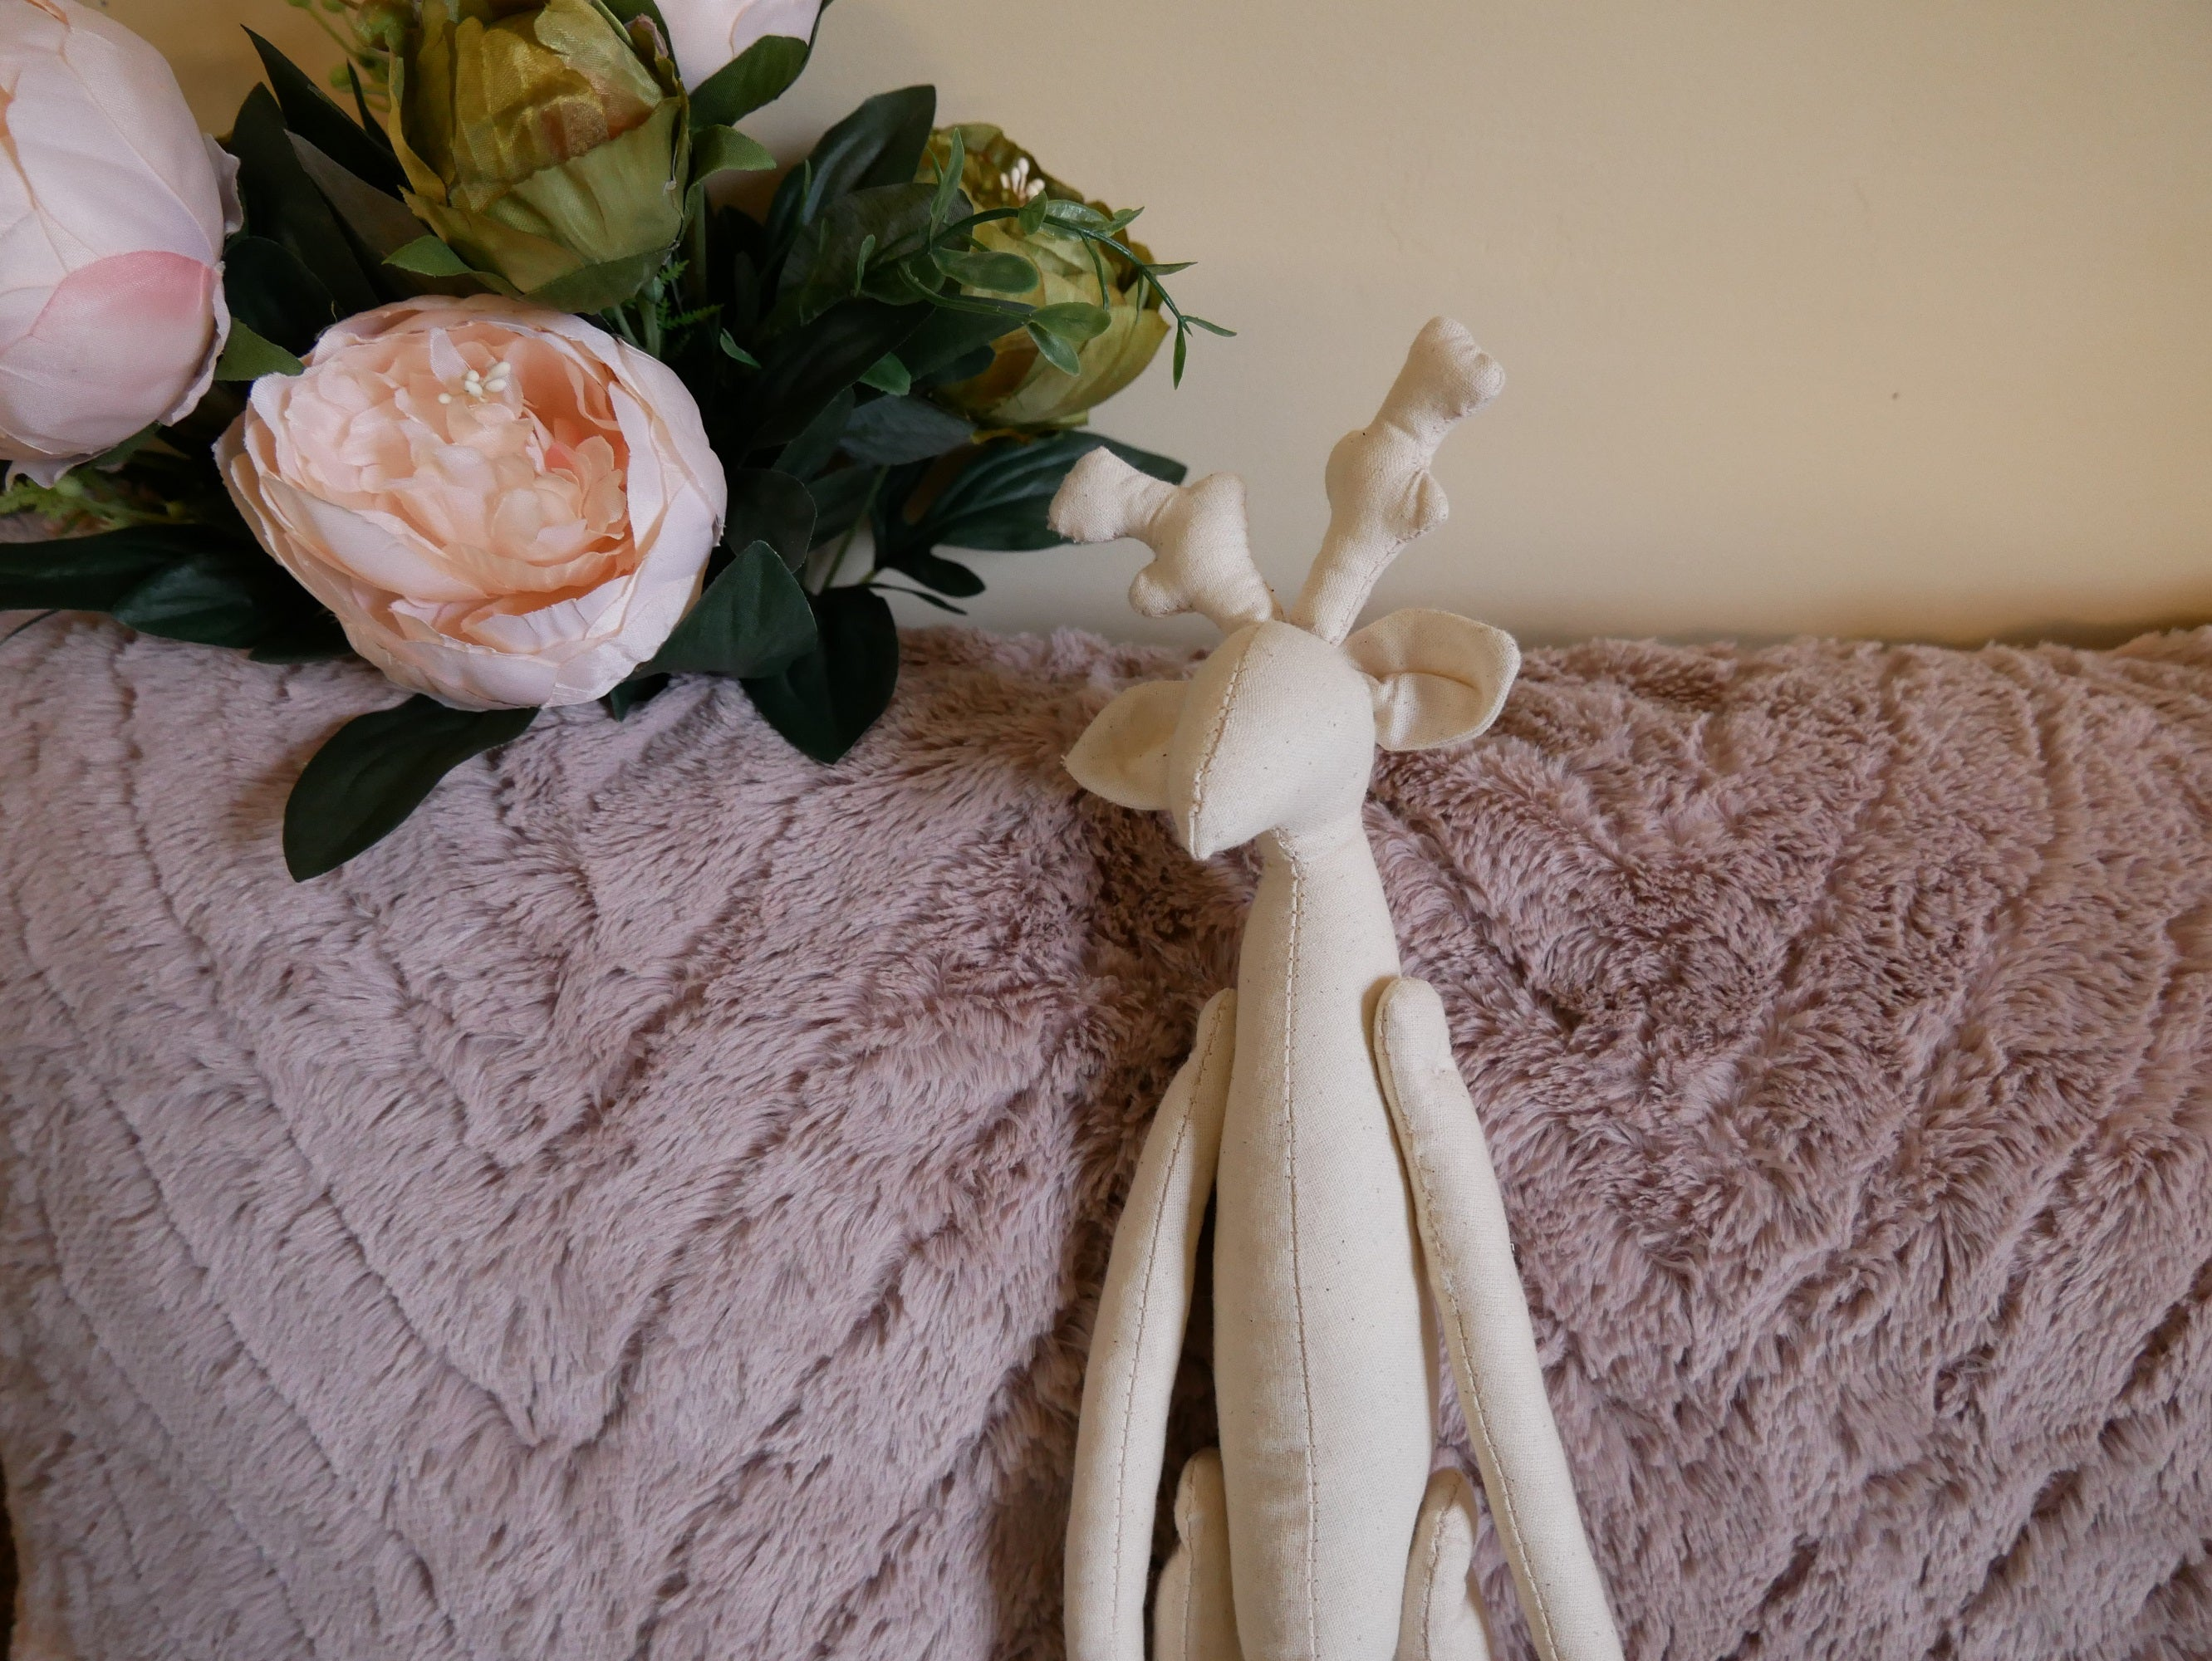 Blank-Reindeer-Doll-Nchanted-Gifts